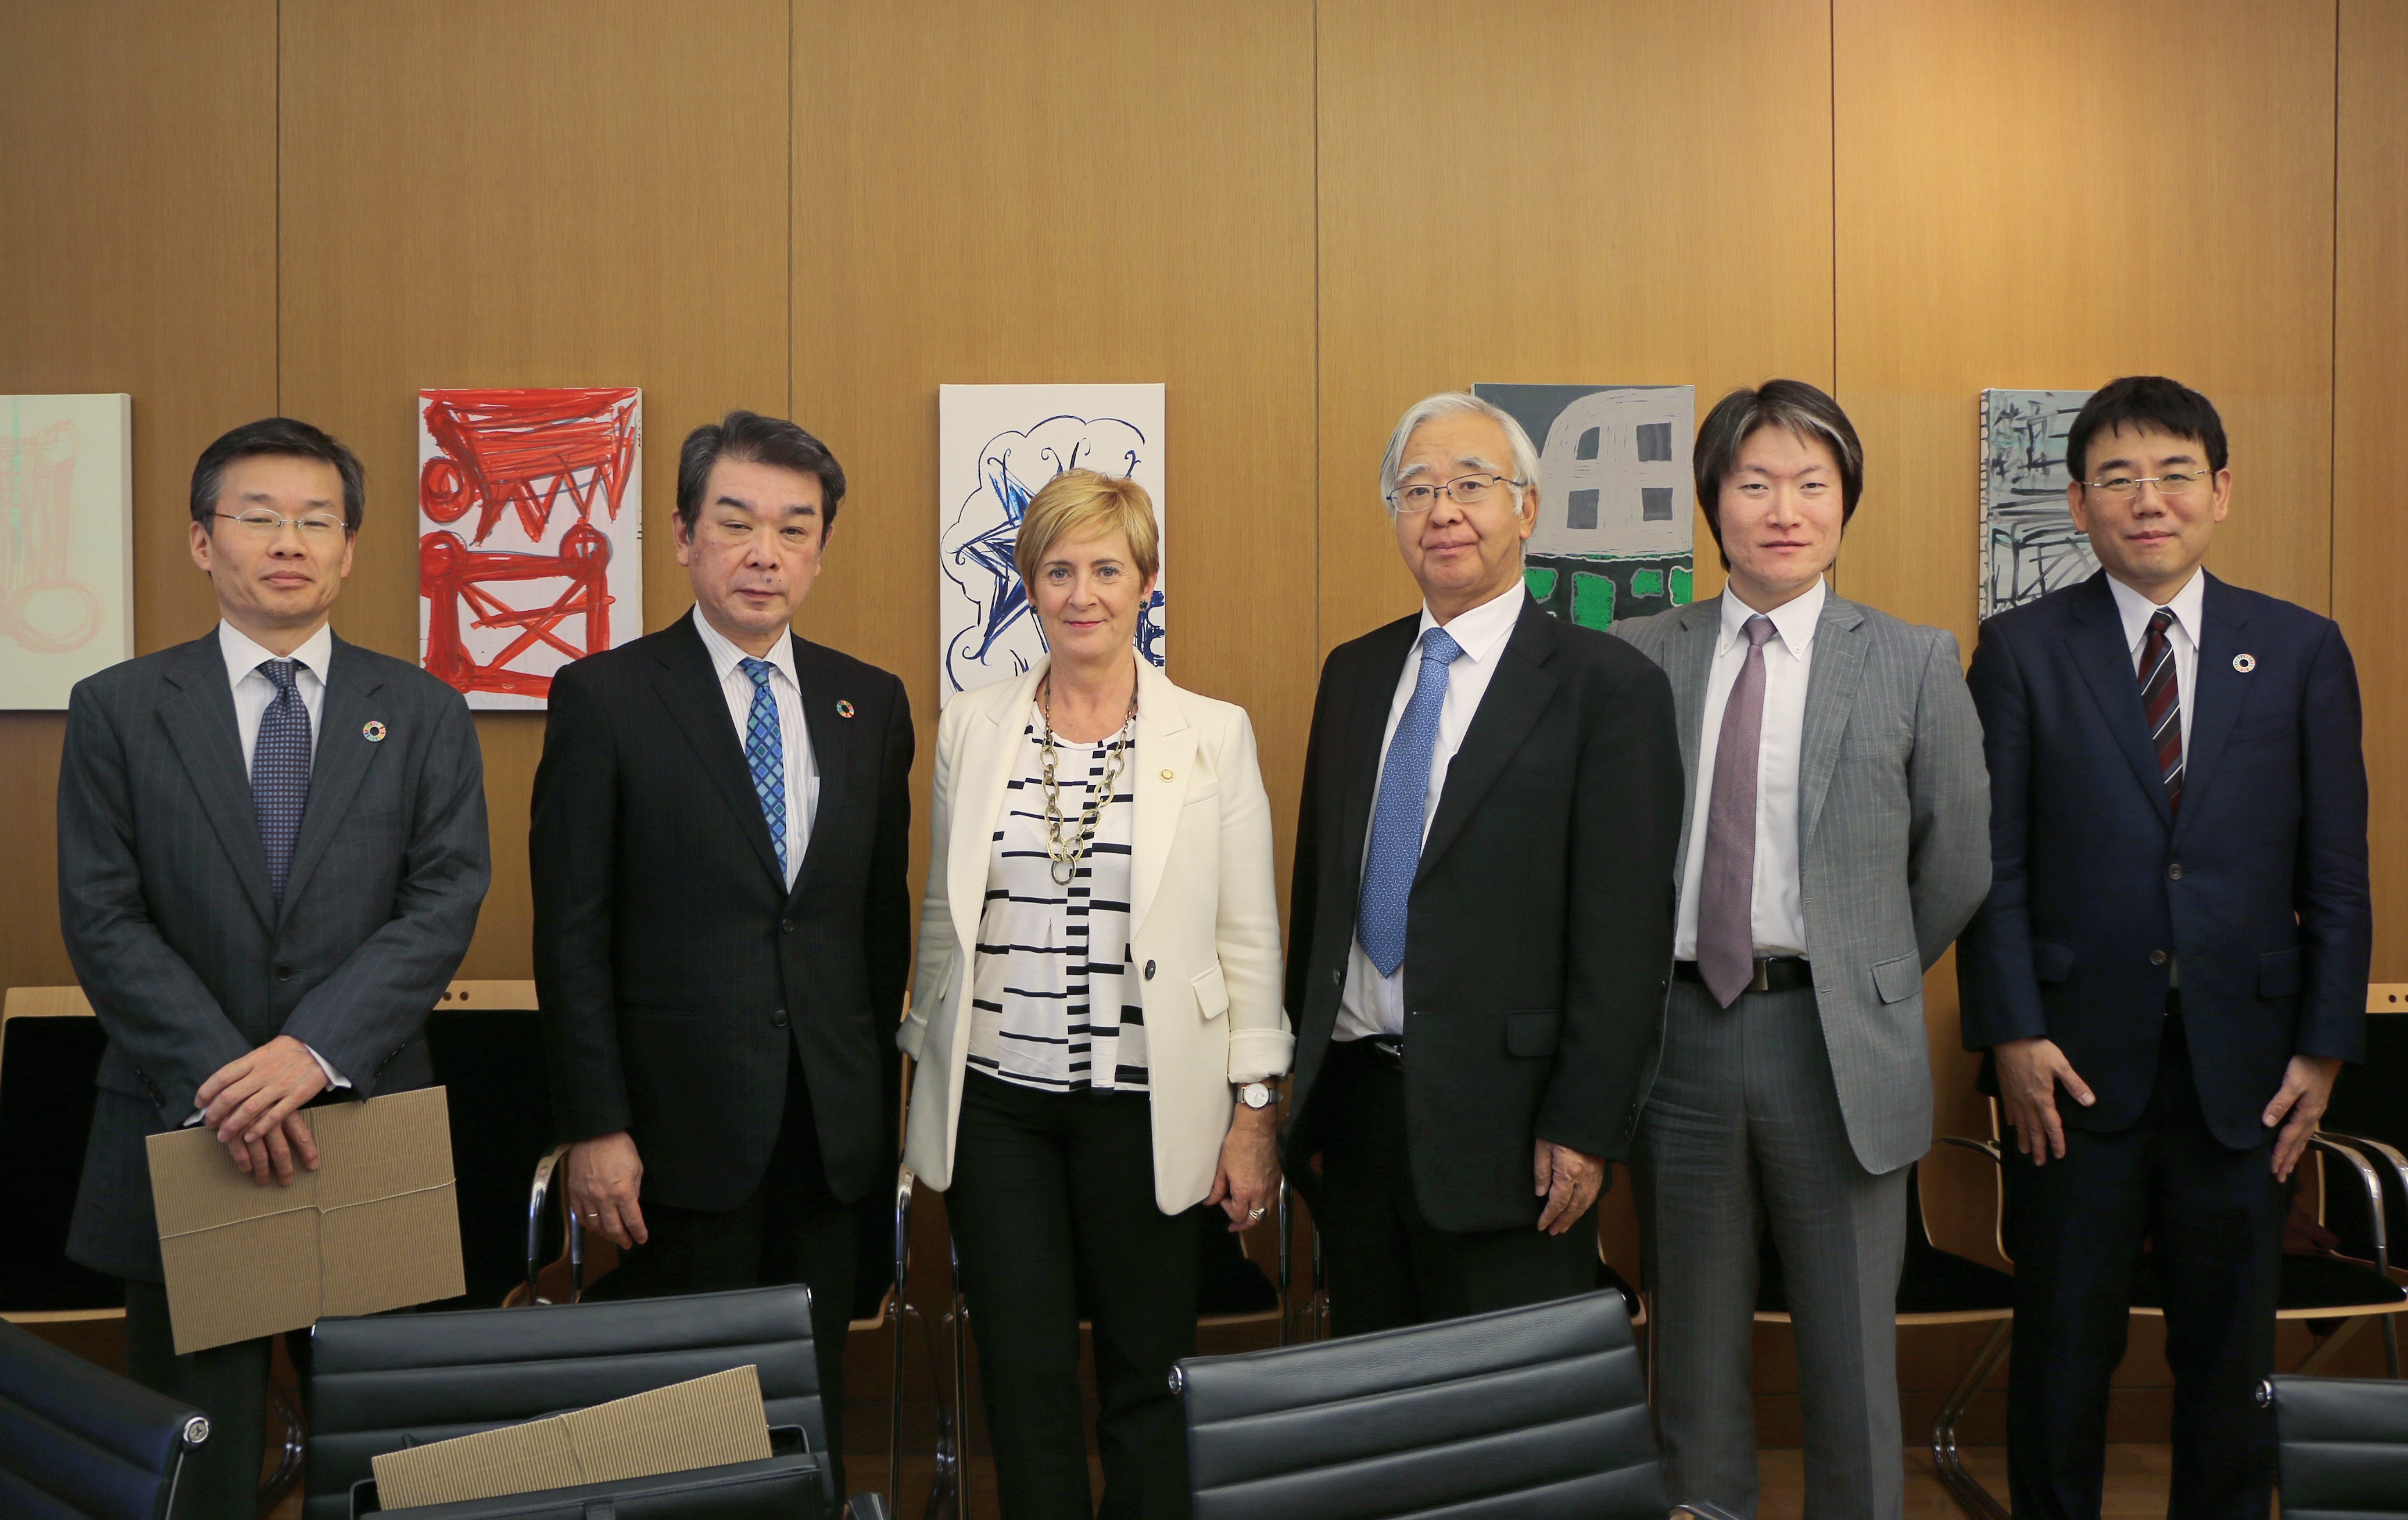 Japan shares its strategy to progress towards Society 5.0 with the Basque Country